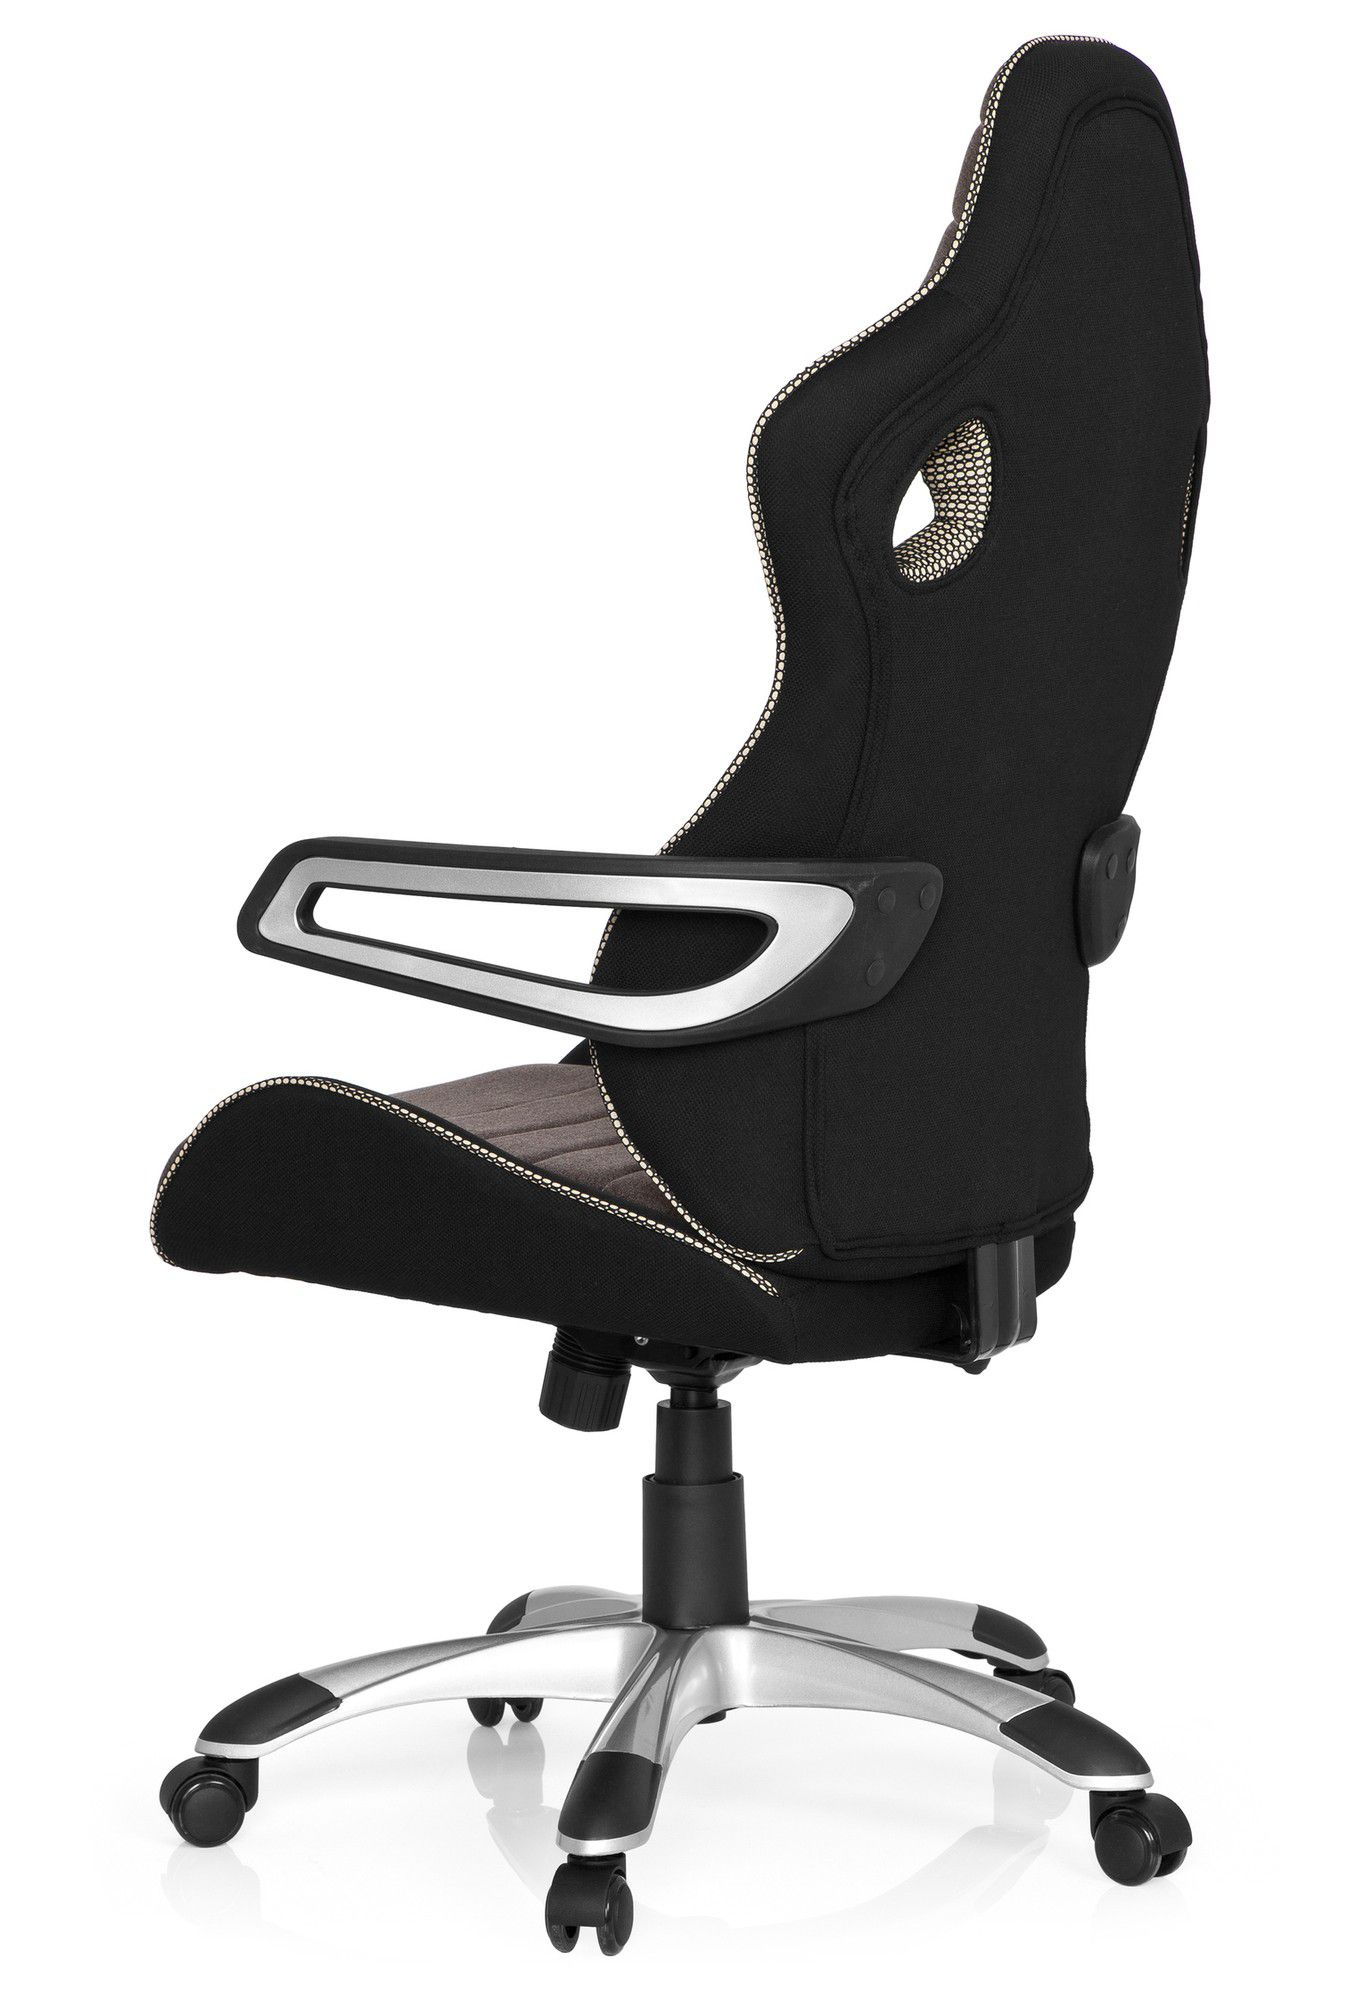 gaming stuhl b rostuhl racer pro iv stoff schwarz grau beige hjh office b2b deutschland. Black Bedroom Furniture Sets. Home Design Ideas